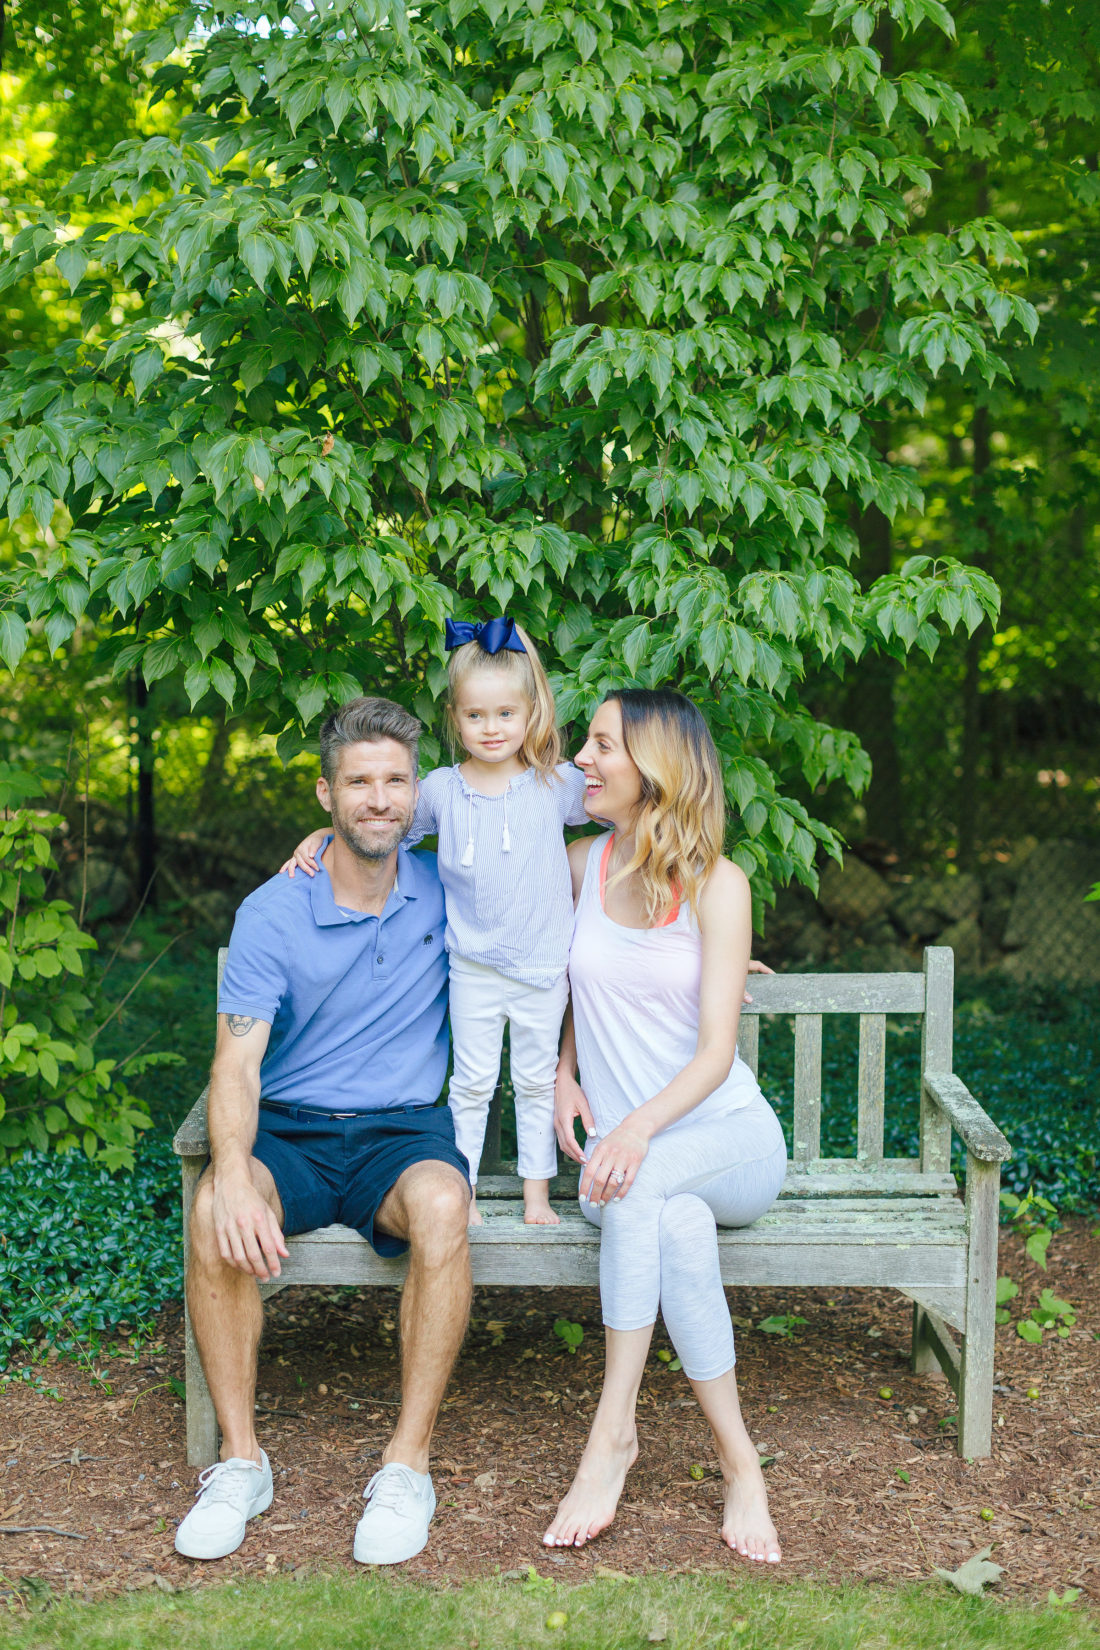 Eva Amurri Martino and Kyle Martino sit with four year old daughter marlowe on a bench surrounded by greenery in the yard of their Connecticut home